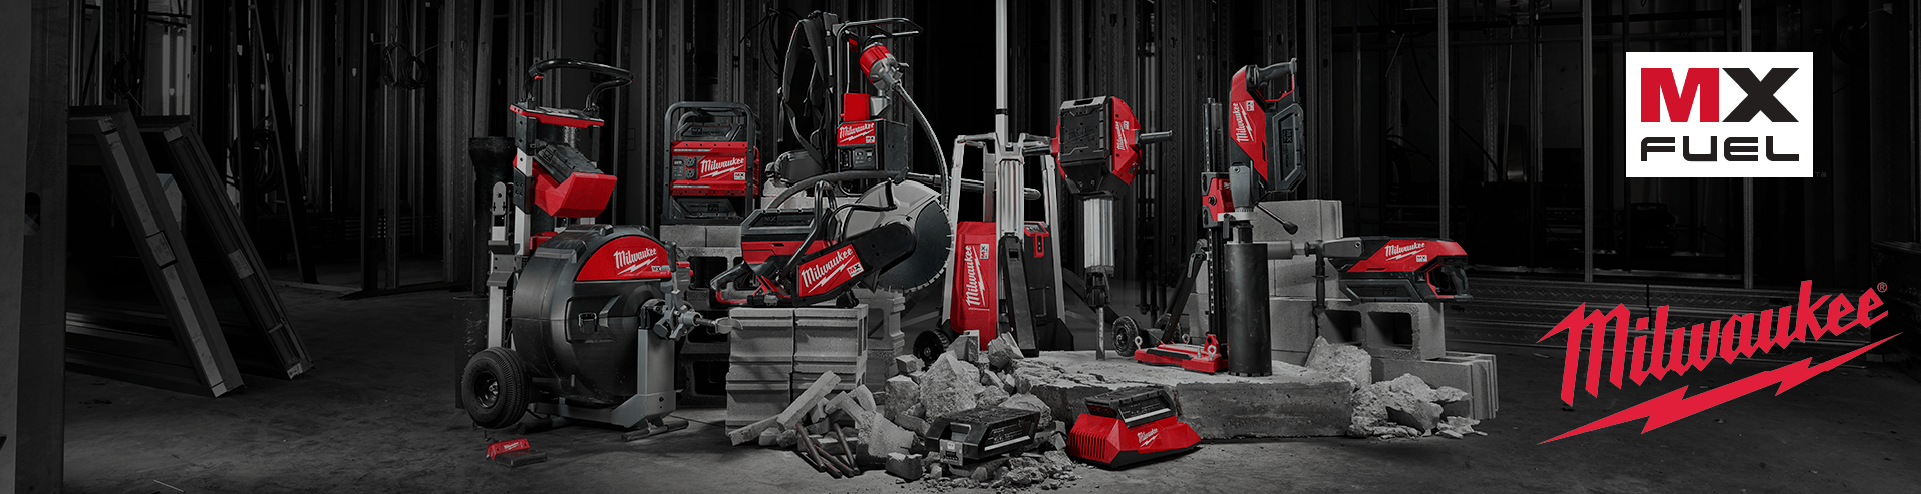 Equipment redefined.